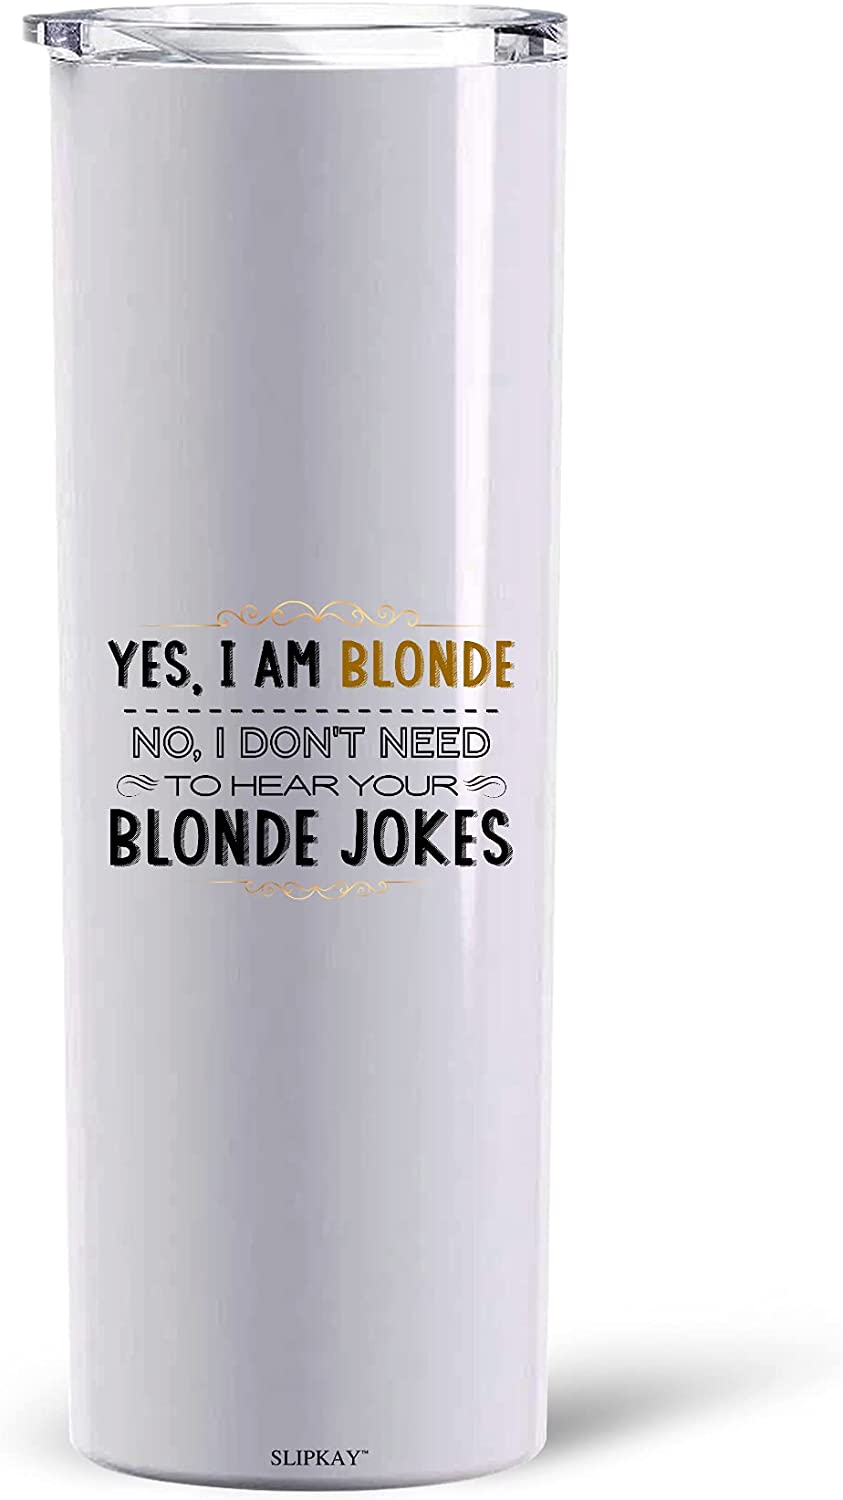 Tampa Mall Yes I Am Blonde No Don't Need Your To 30oz Hear S Jokes OFFer